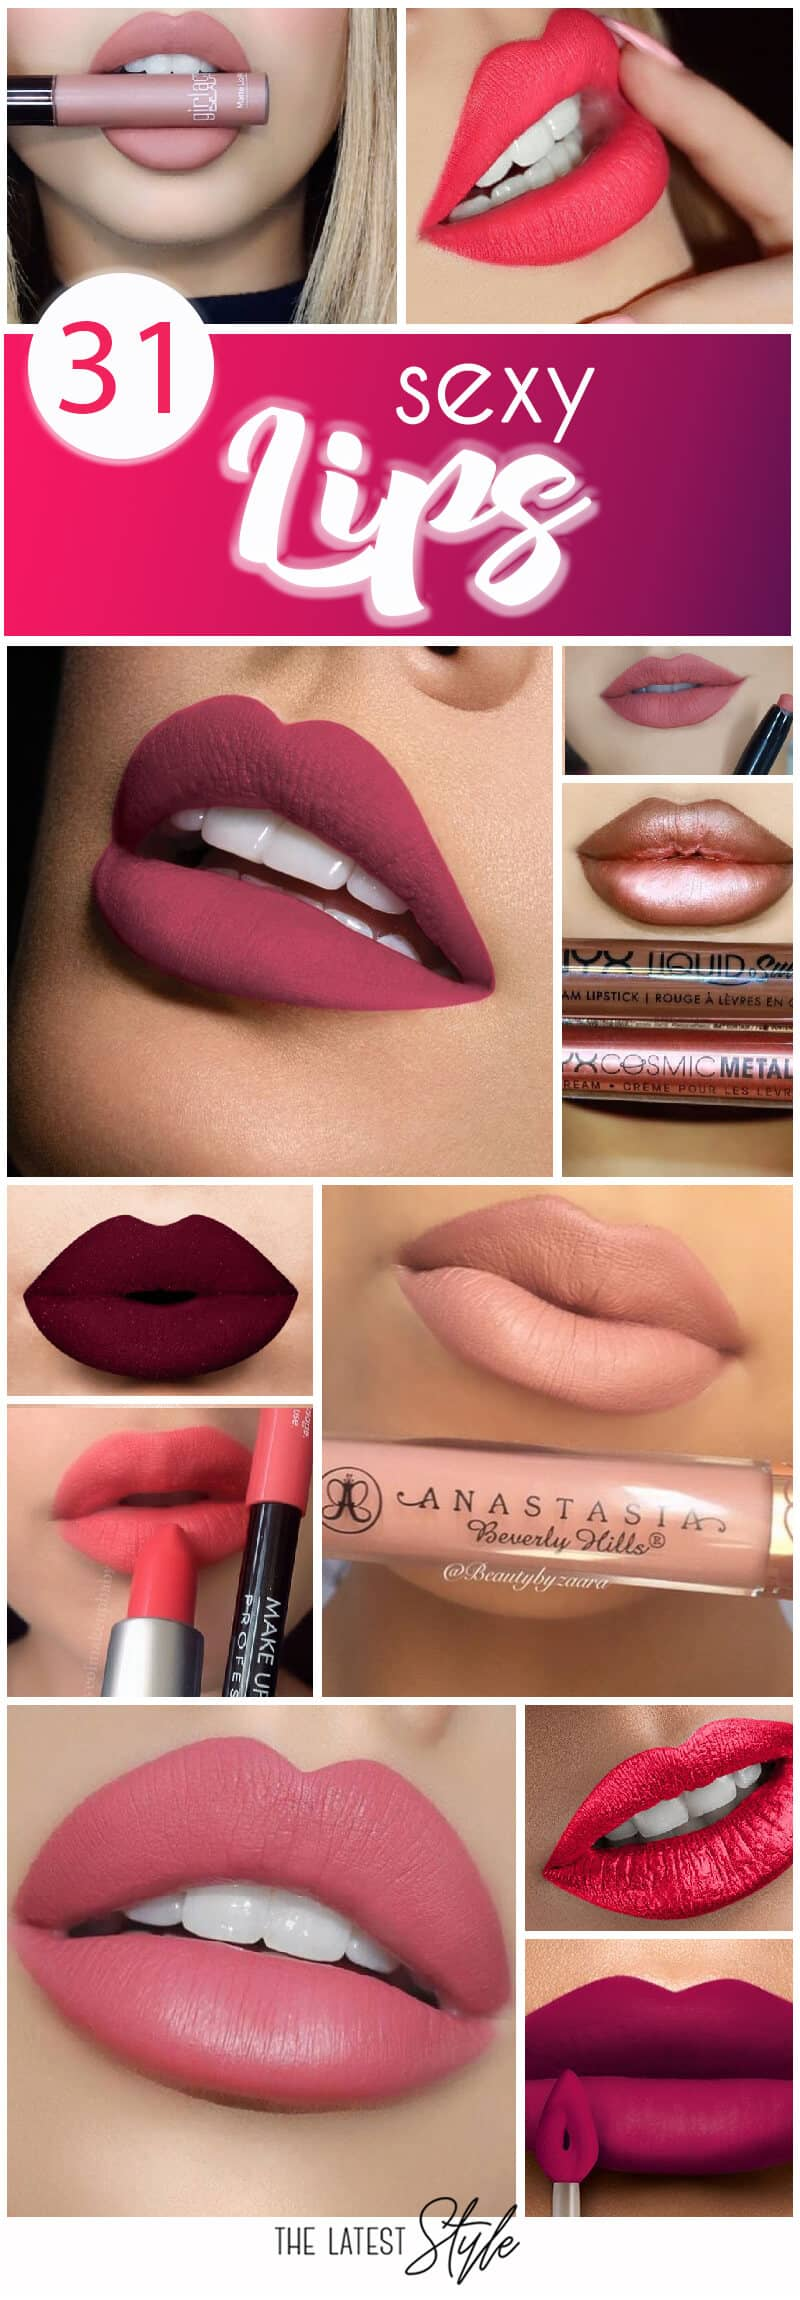 31 Super Sexy Lips Inspirations